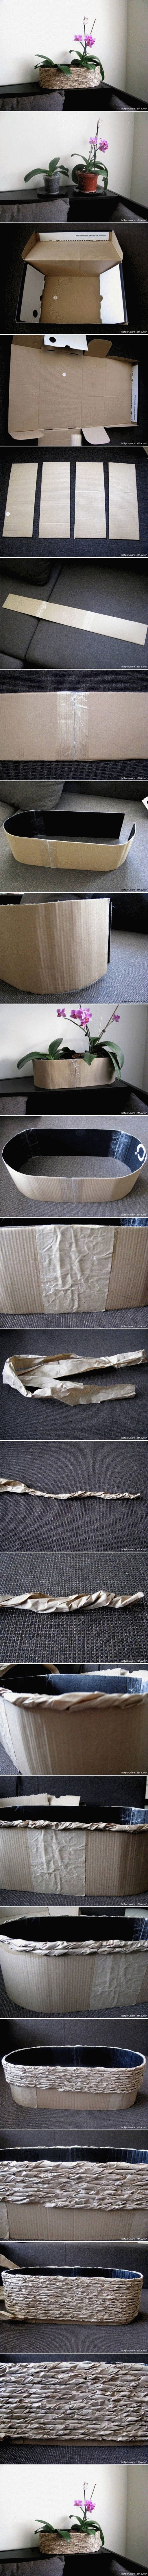 DIY Planter from Packing Paper and Cardboard